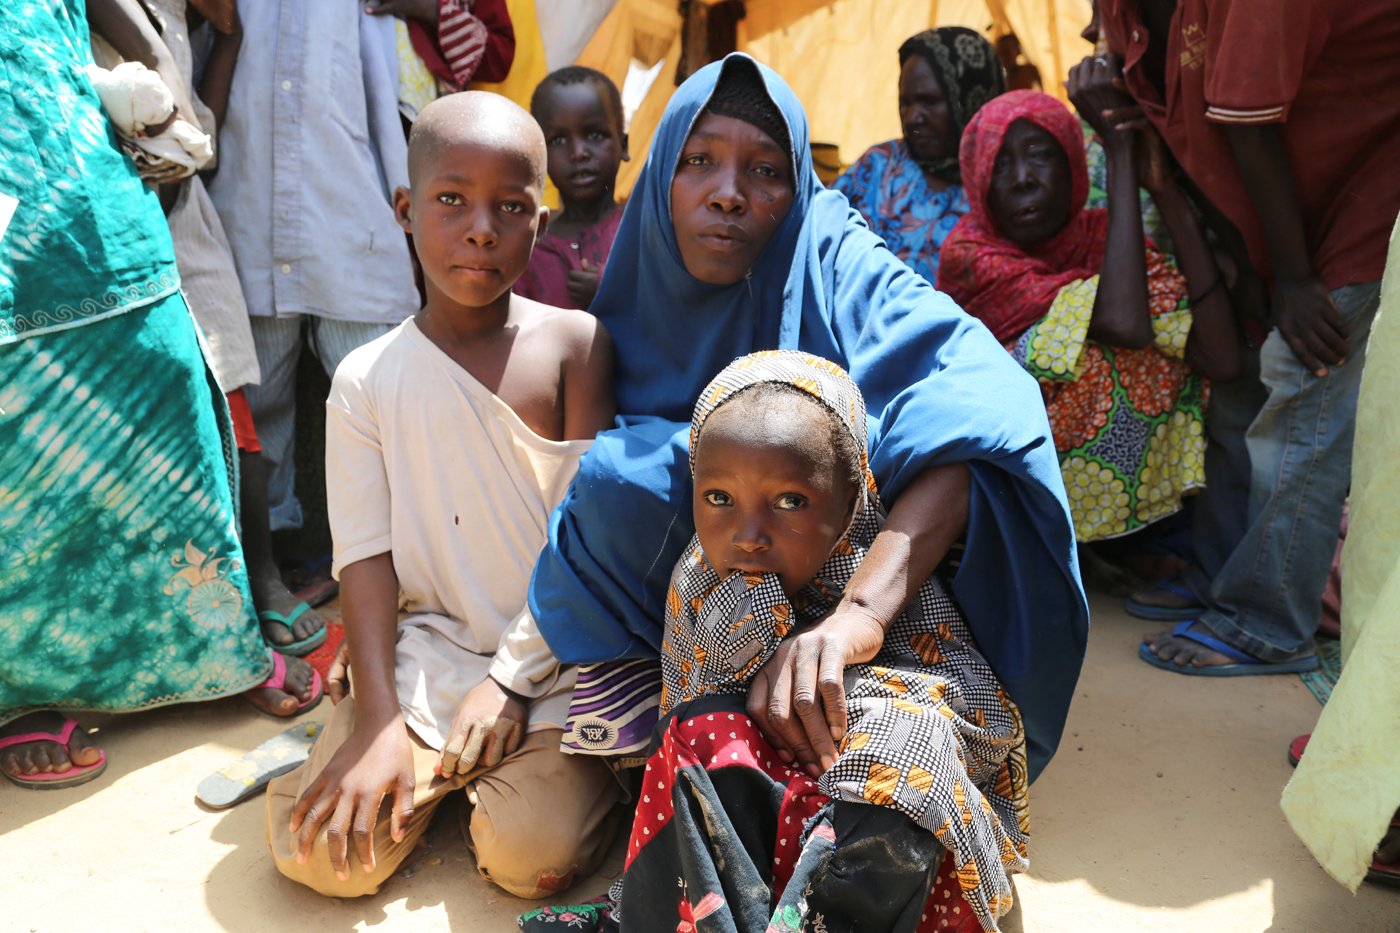 CERF allocates $13 million in support of people in north-eastern Nigeria